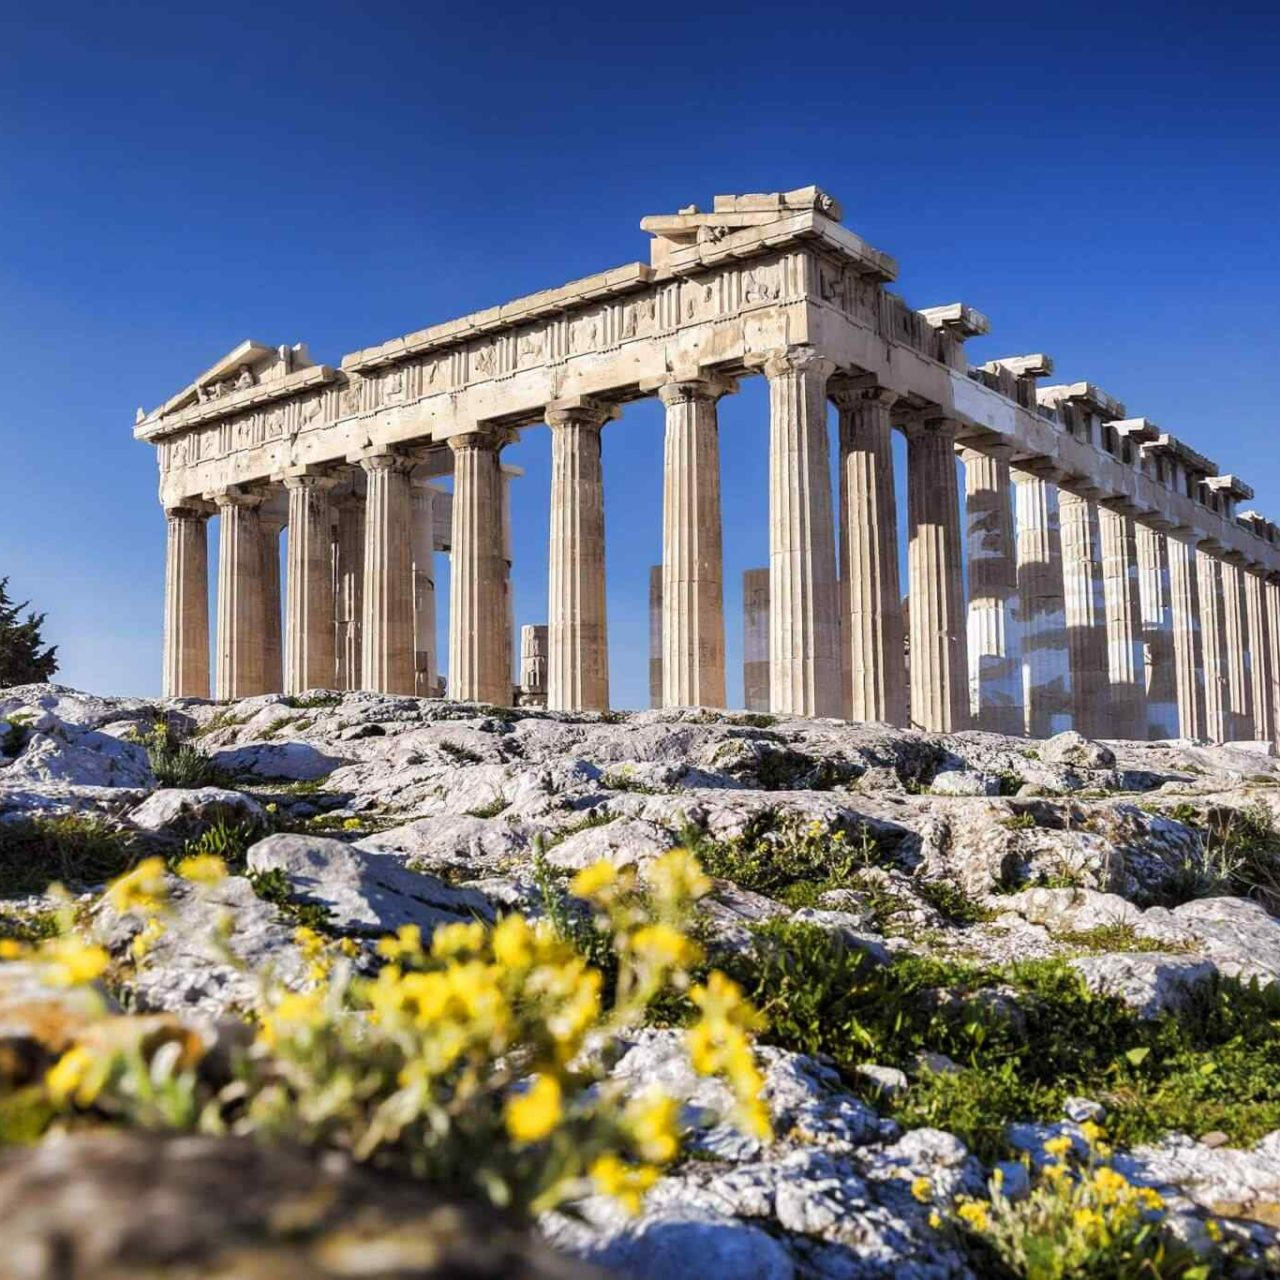 https://oltintourism.uz/wp-content/uploads/2019/06/destination-athens-02-1280x1280.jpg